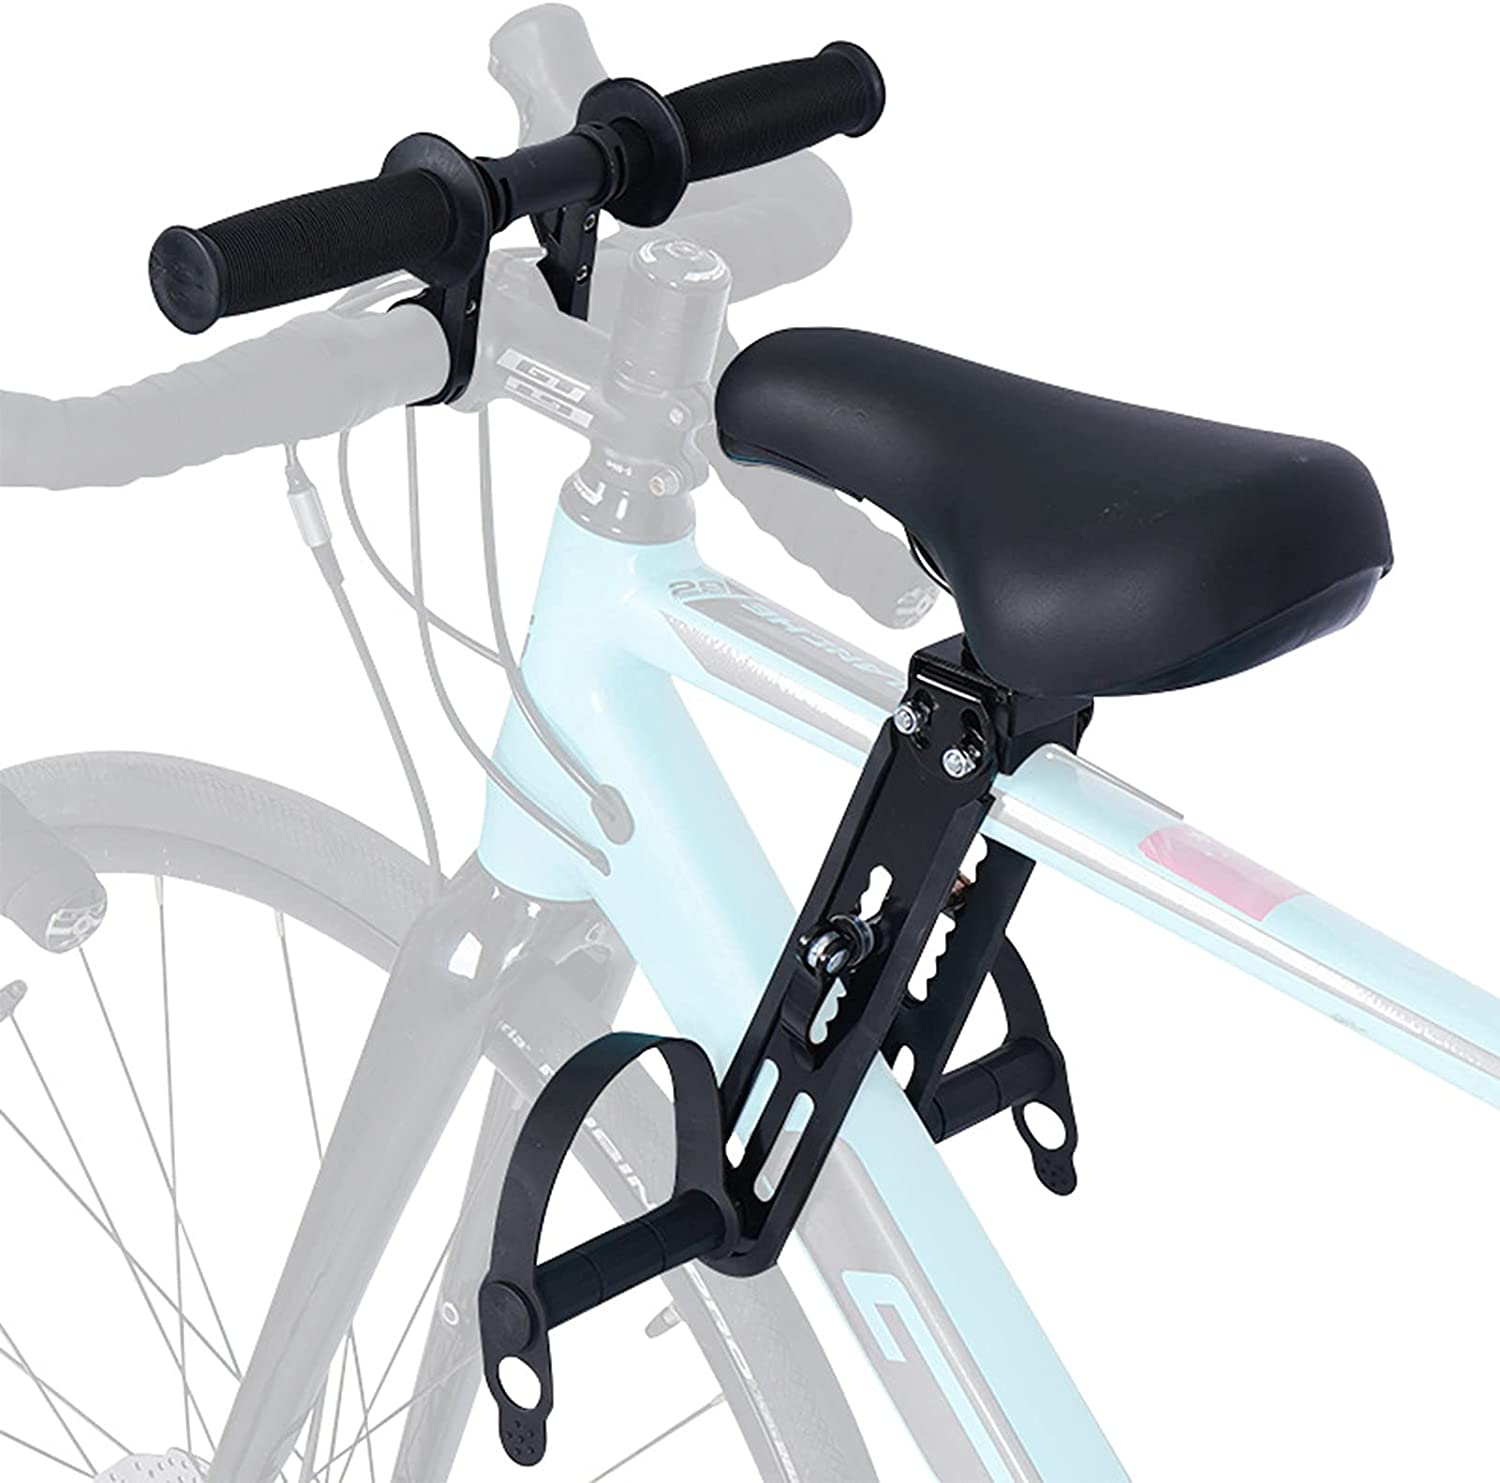 SWAUSWAUK Kids Bike Seat with Handlebar Attachment, Bike Accessories for Adult Bikes, Front Mounted Bicycle Seats for Children 2-5 Years (Up to 48 lbs), Compatible with All Adult Mountain Bikes